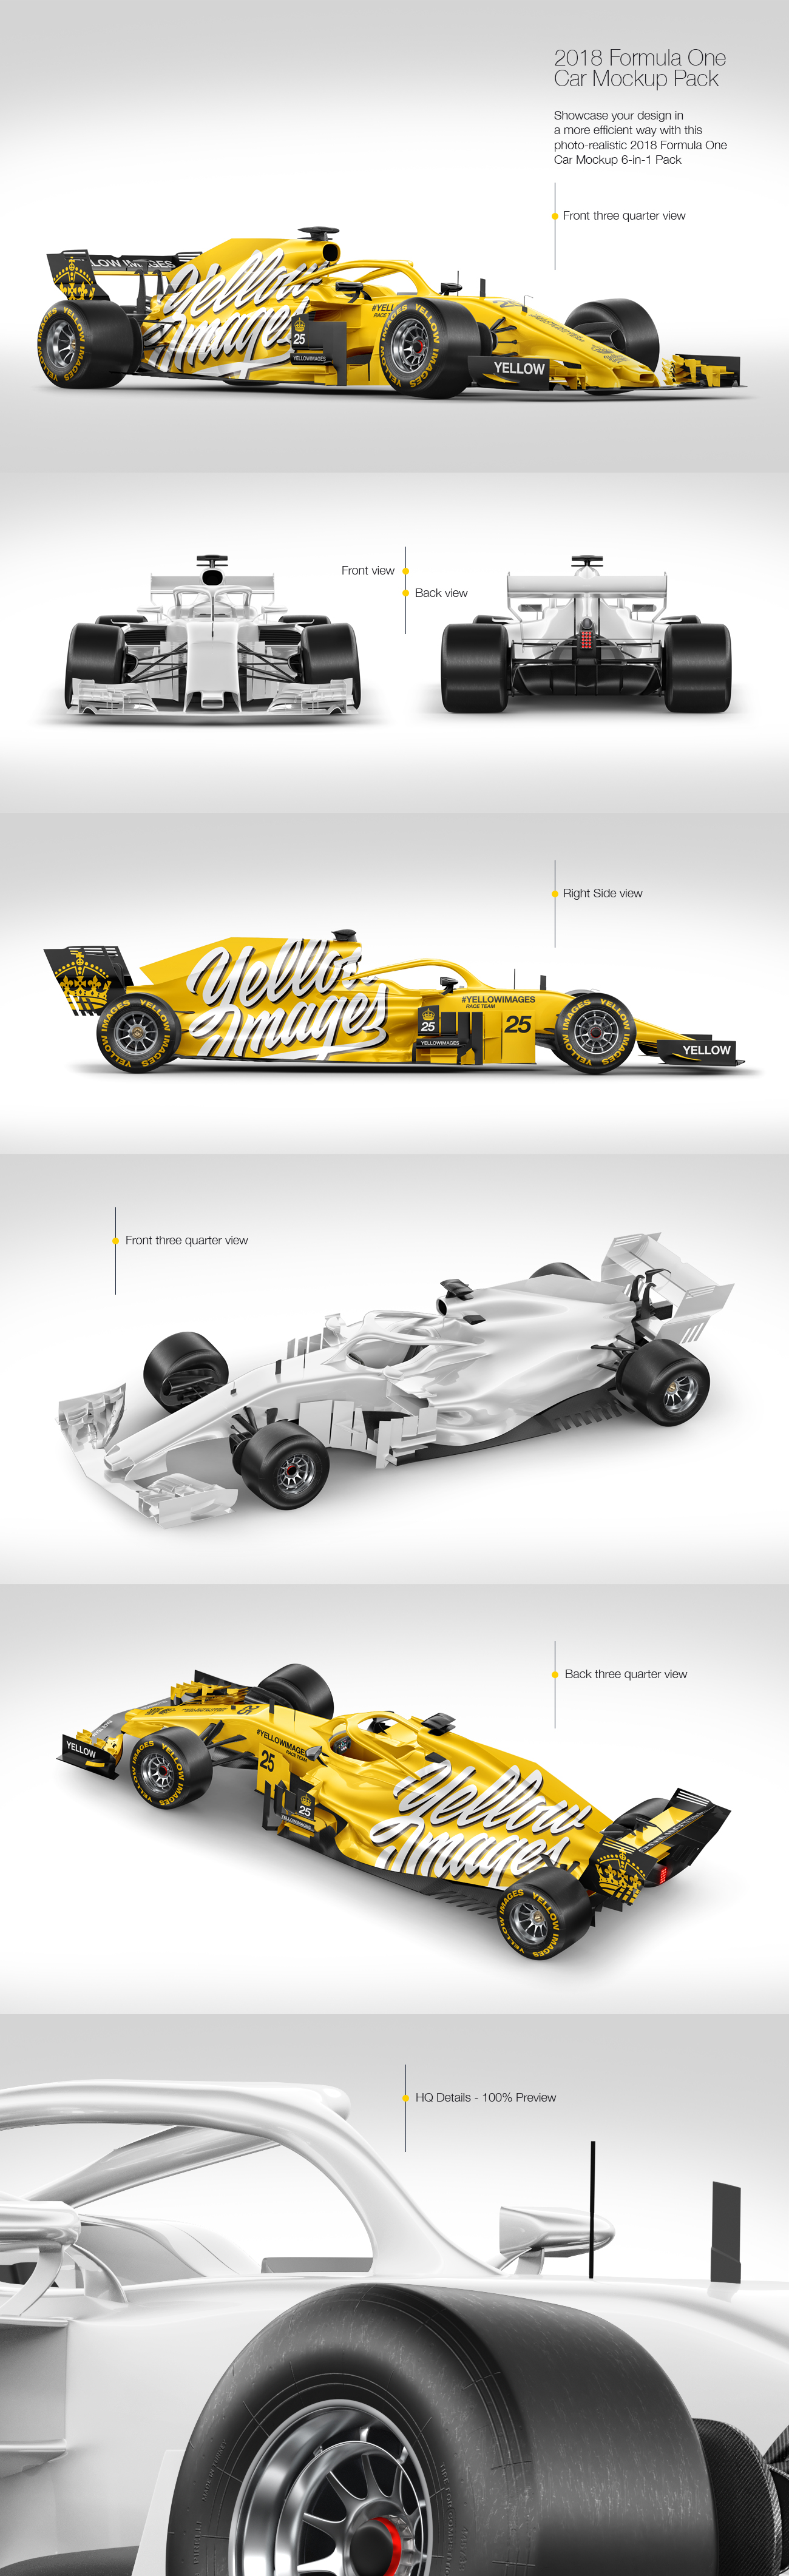 Download Formula 1 2018 Mockup Pack In Handpicked Sets Of Vehicles On Yellow Images Creative Store PSD Mockup Templates